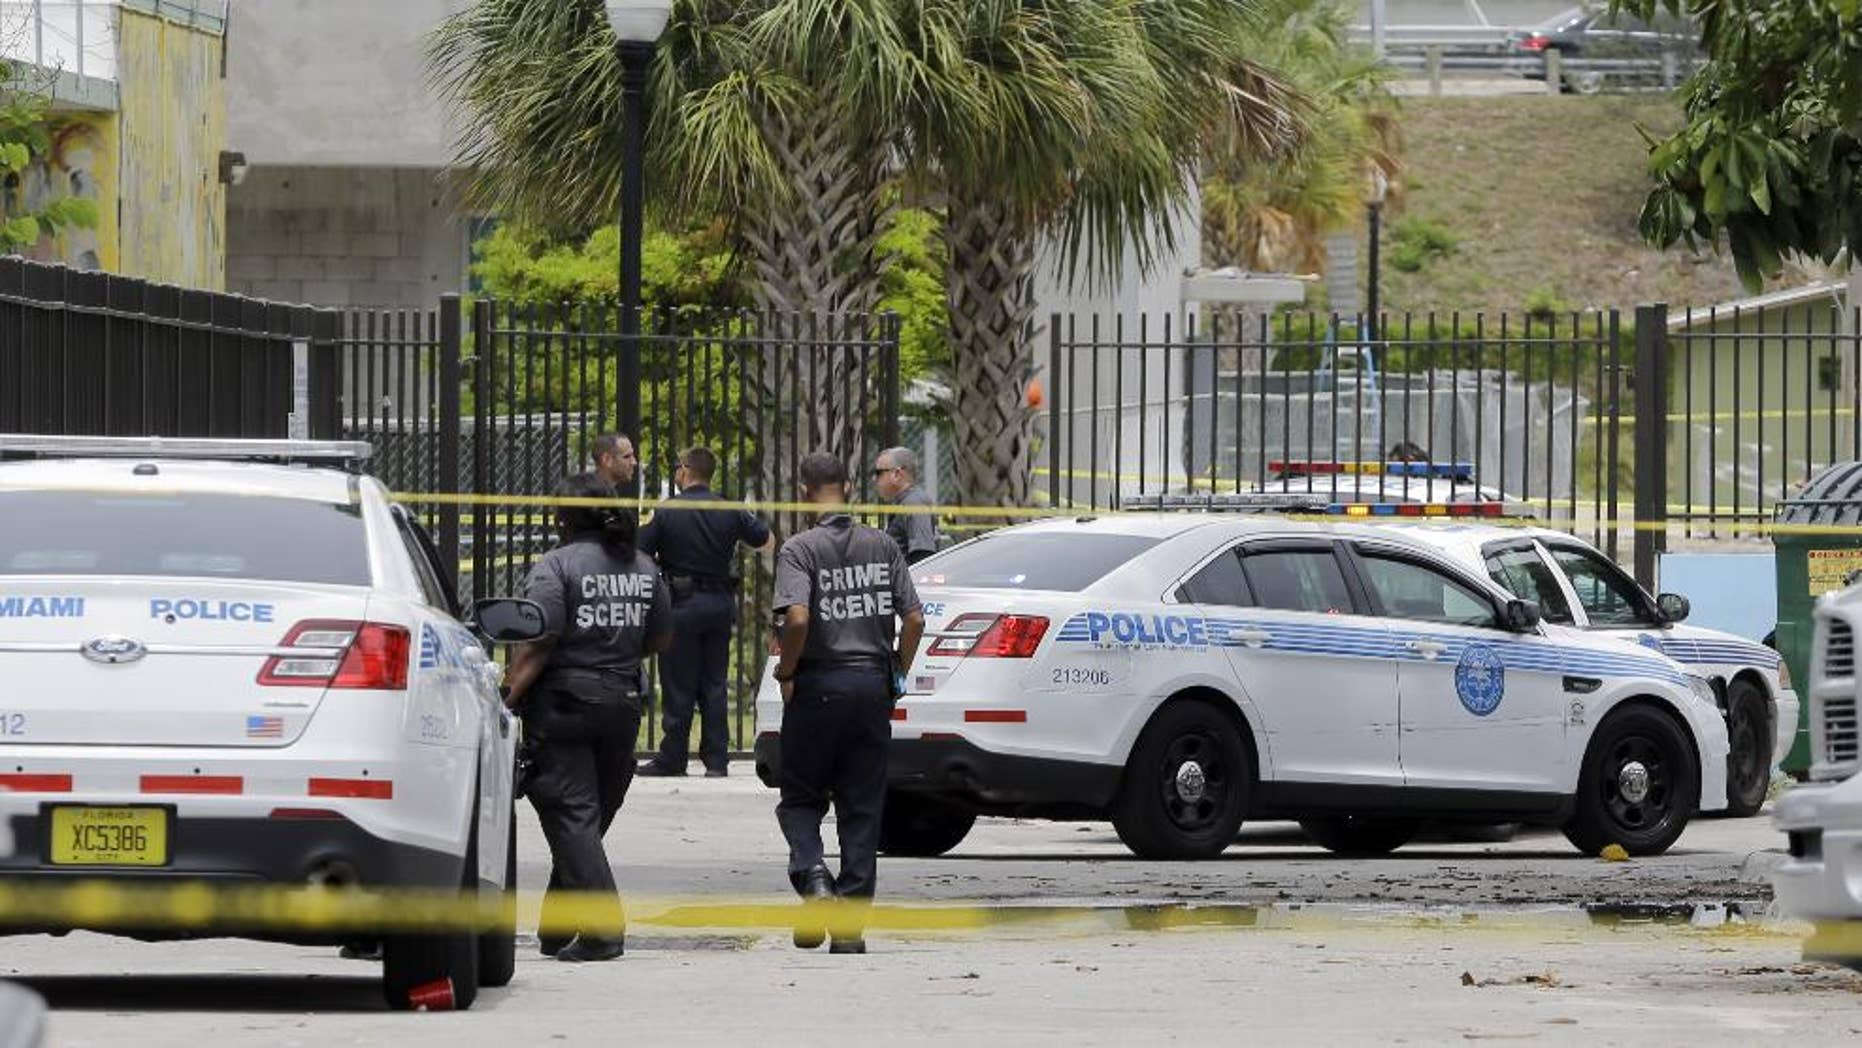 Miami Police officers at the scene where a man holding a pipe has been shot by a Miami police officer in a downtown park ,Thursday, June 11, 2015, in Miami. The man's condition and identity were not immediately available. He was taken to a local hospital for treatment. (AP Photo/Alan Diaz)